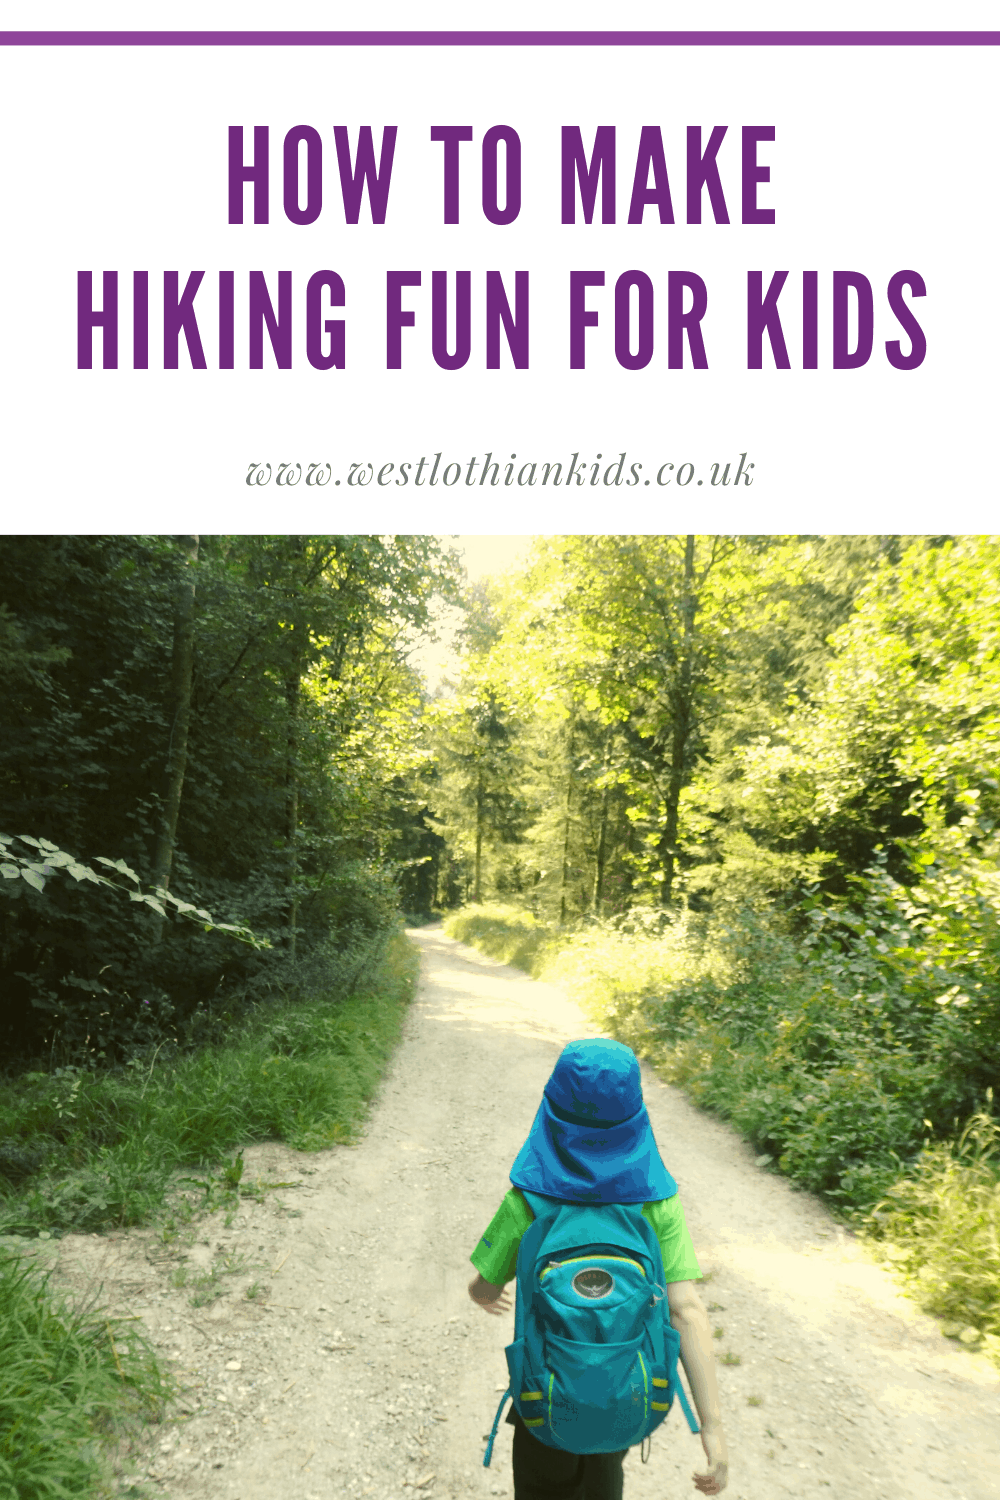 How To Make Hiking Fun For KIds. Tips and advice for hiking with kids